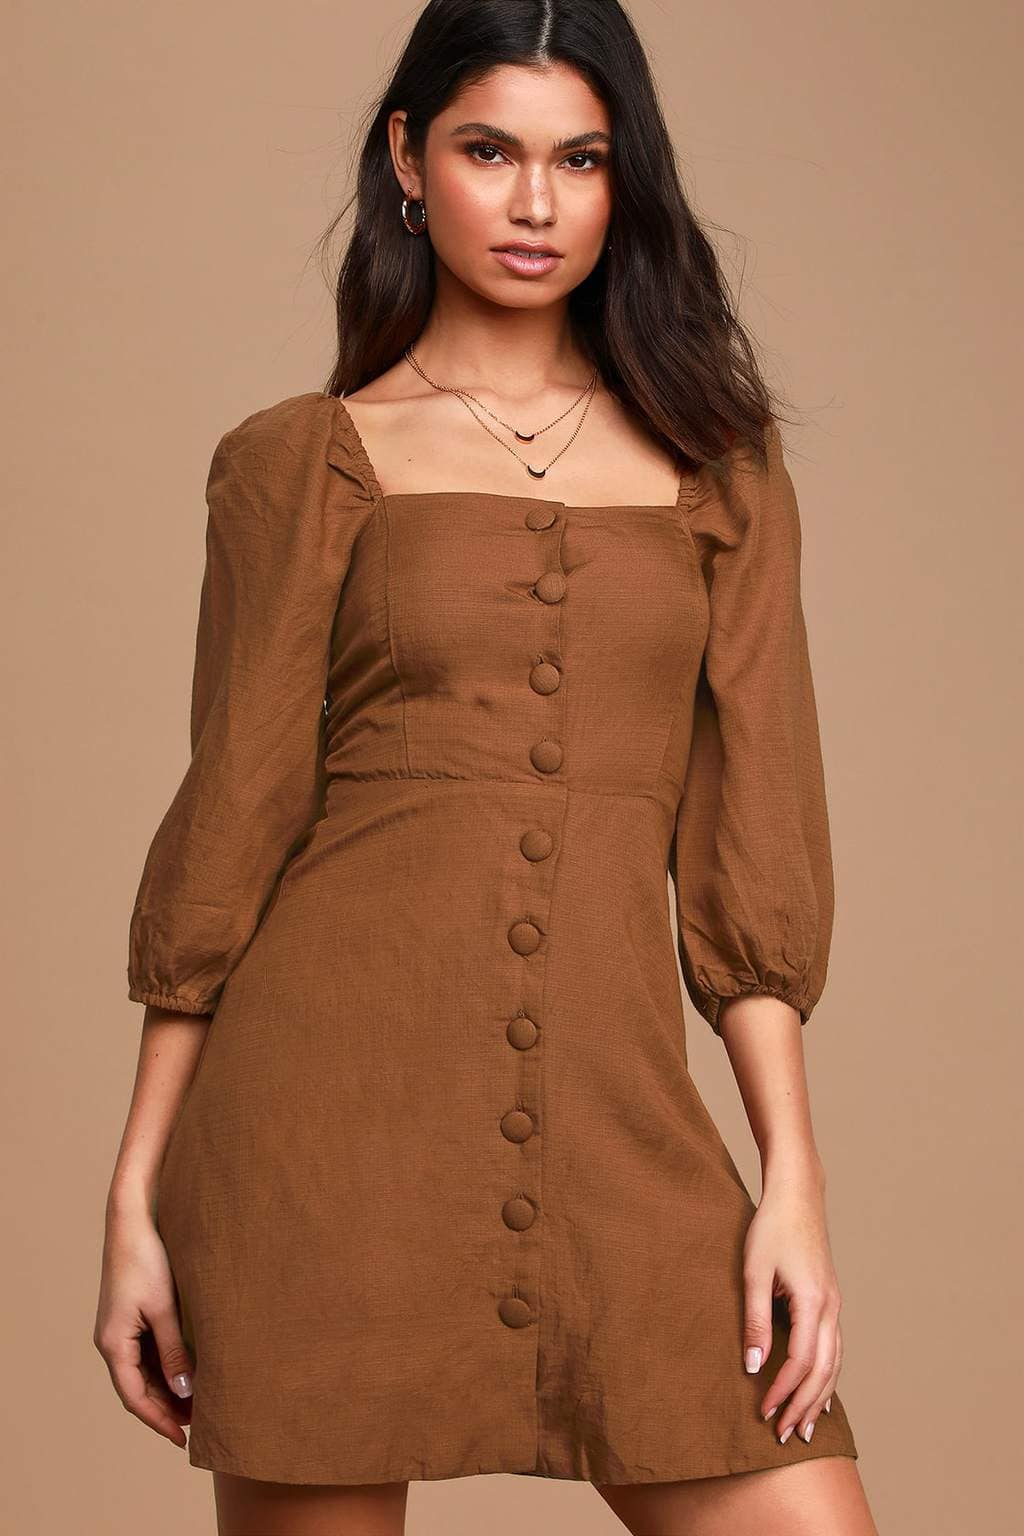 How to Wear Brown: header image of girl in brown button front dress with puff sleeves.